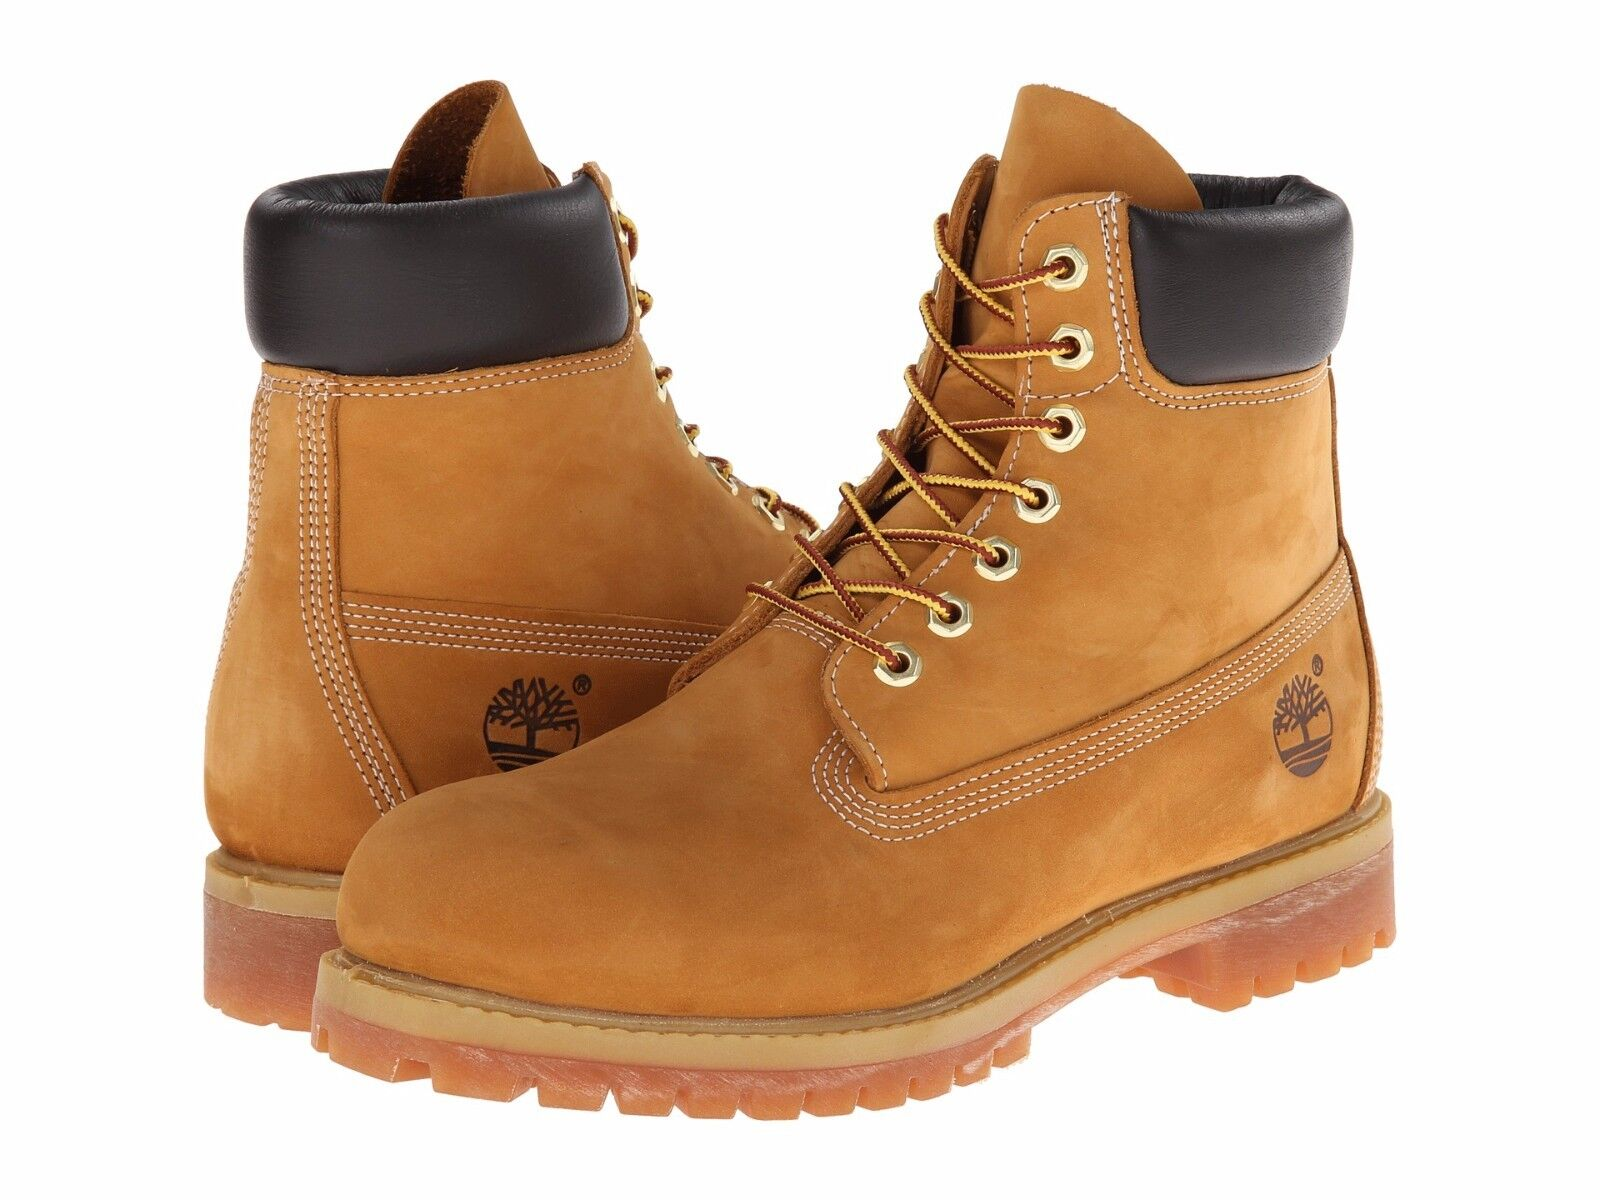 89fb93bc10ac Men s Shoes Timberland 6 INCH PREMIUM Waterproof Boots 10061 WHEAT  New   фото